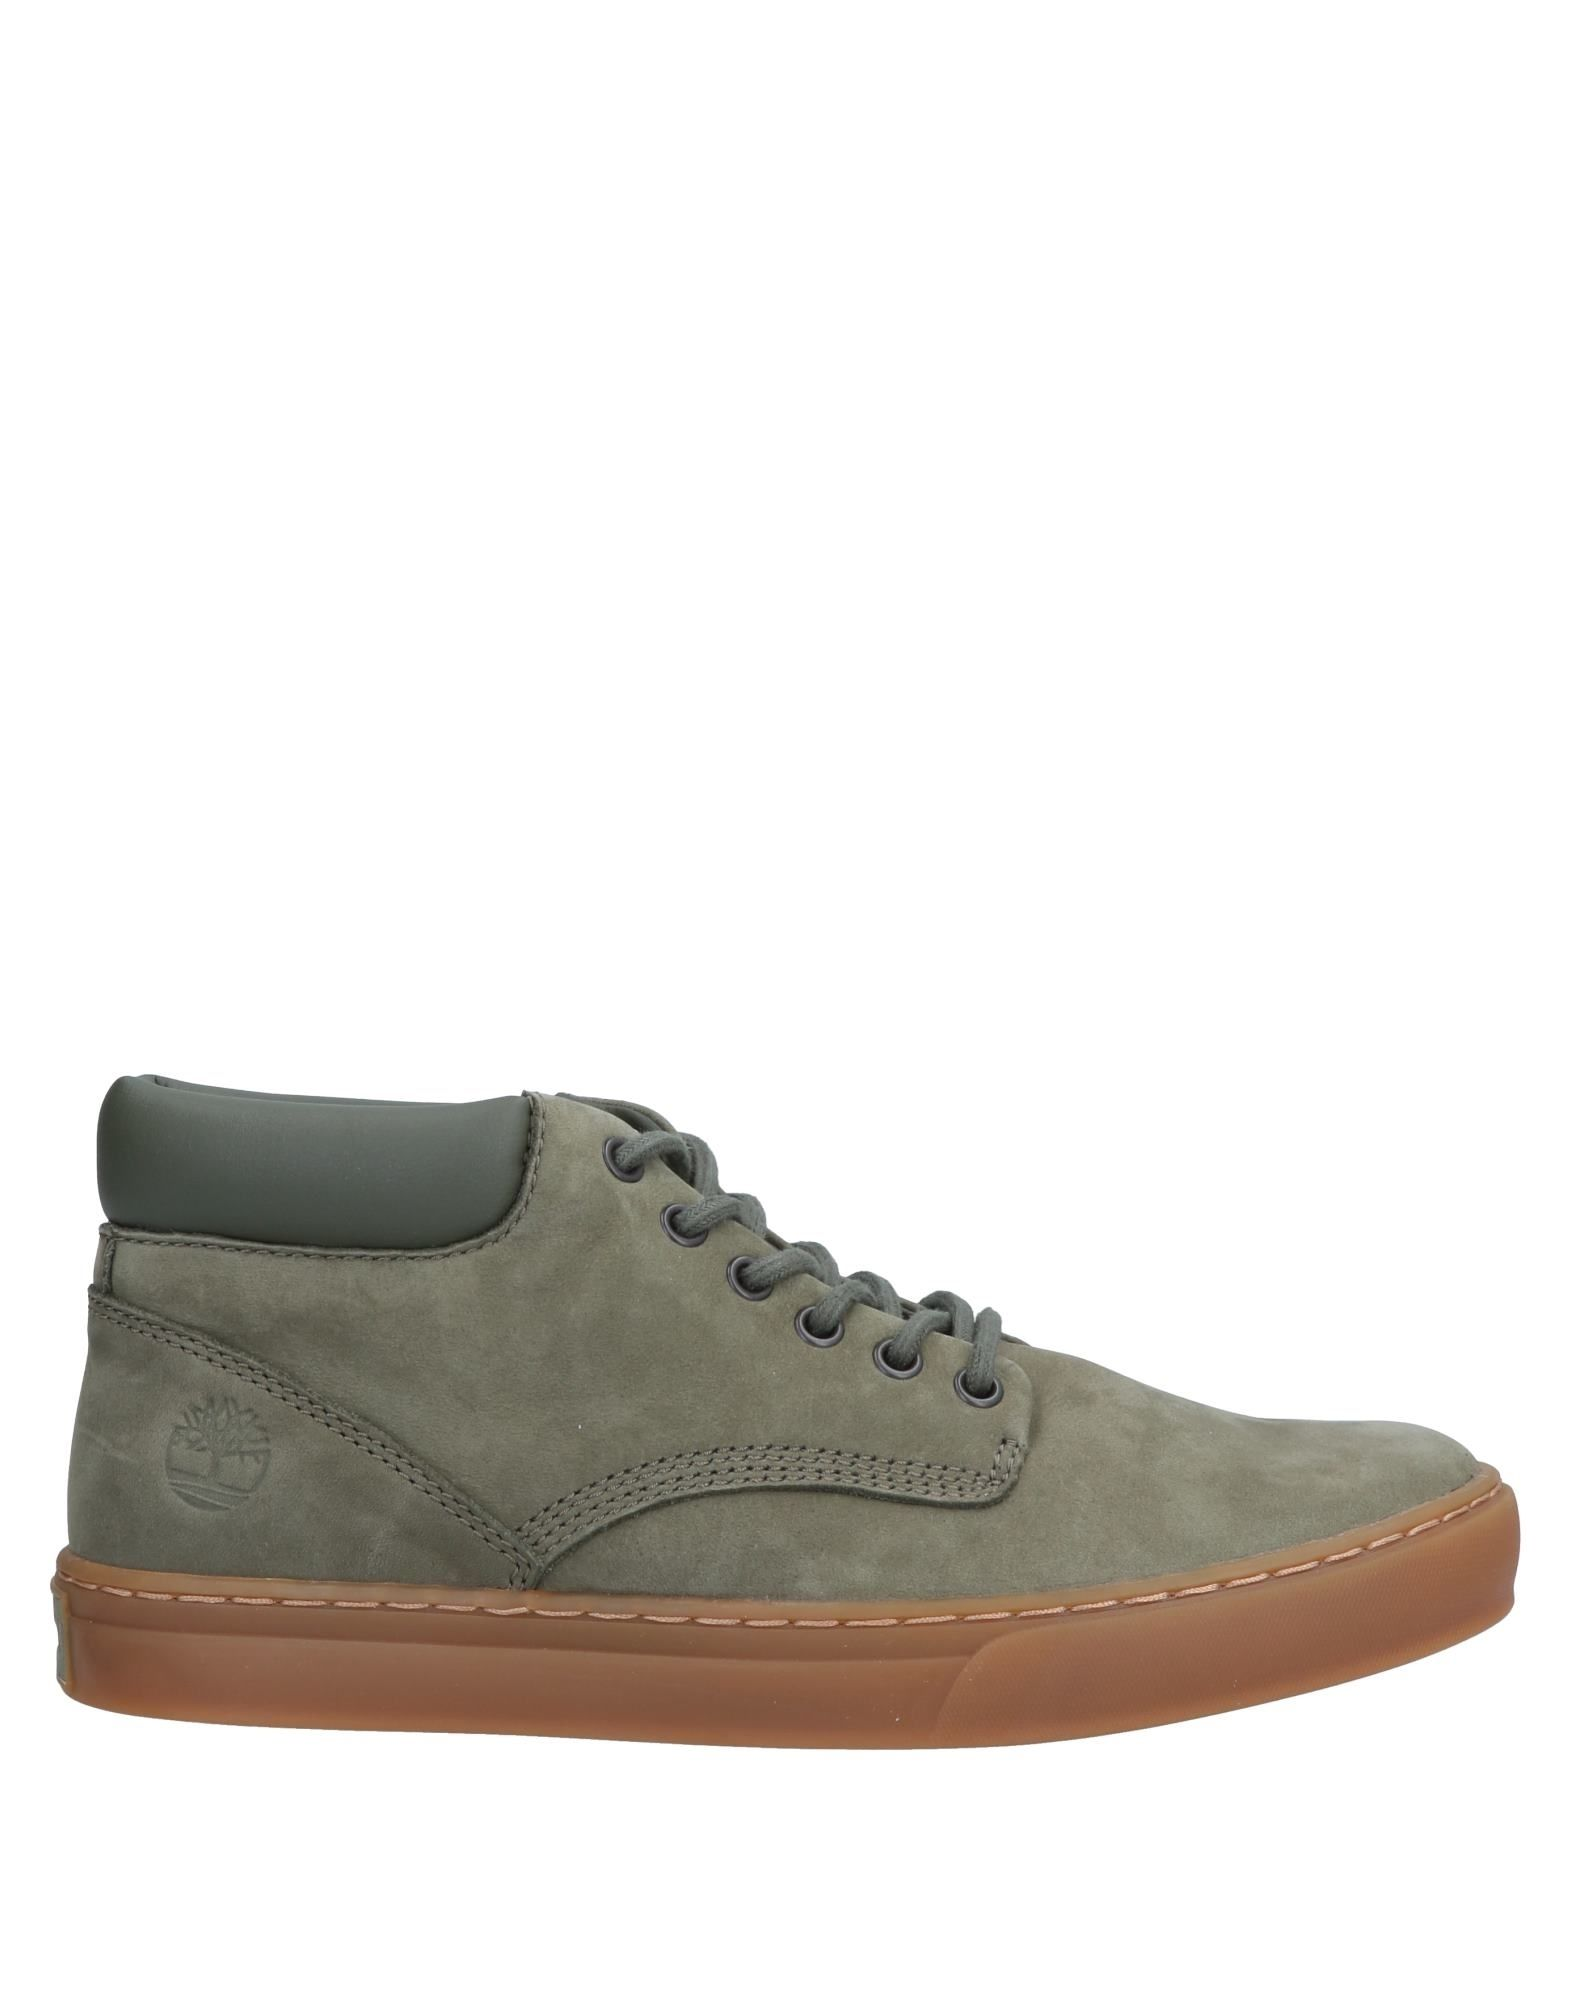 6adcf37fd04 TIMBERLAND ΠΑΠΟΥΤΣΙΑ Χαμηλά sneakers, Ανδρικά sneakers, ΑΝΔΡΑΣ ...